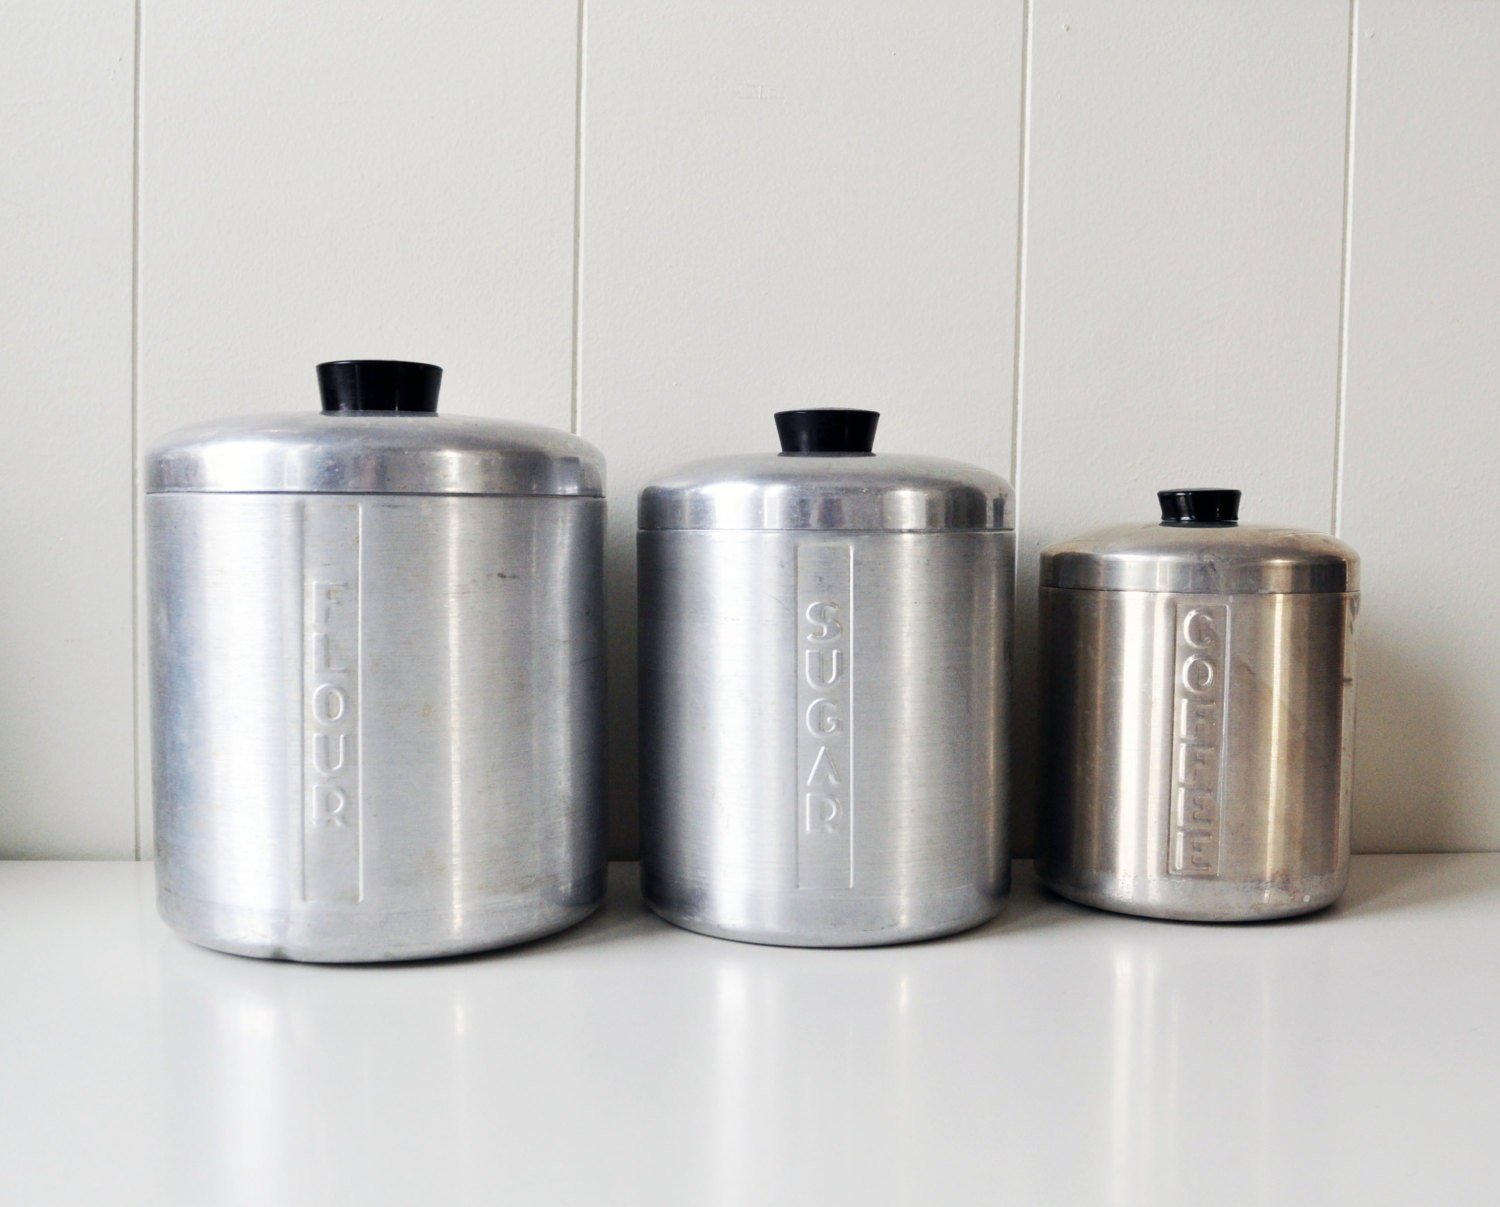 Vintage Set of Kitchen Canisters